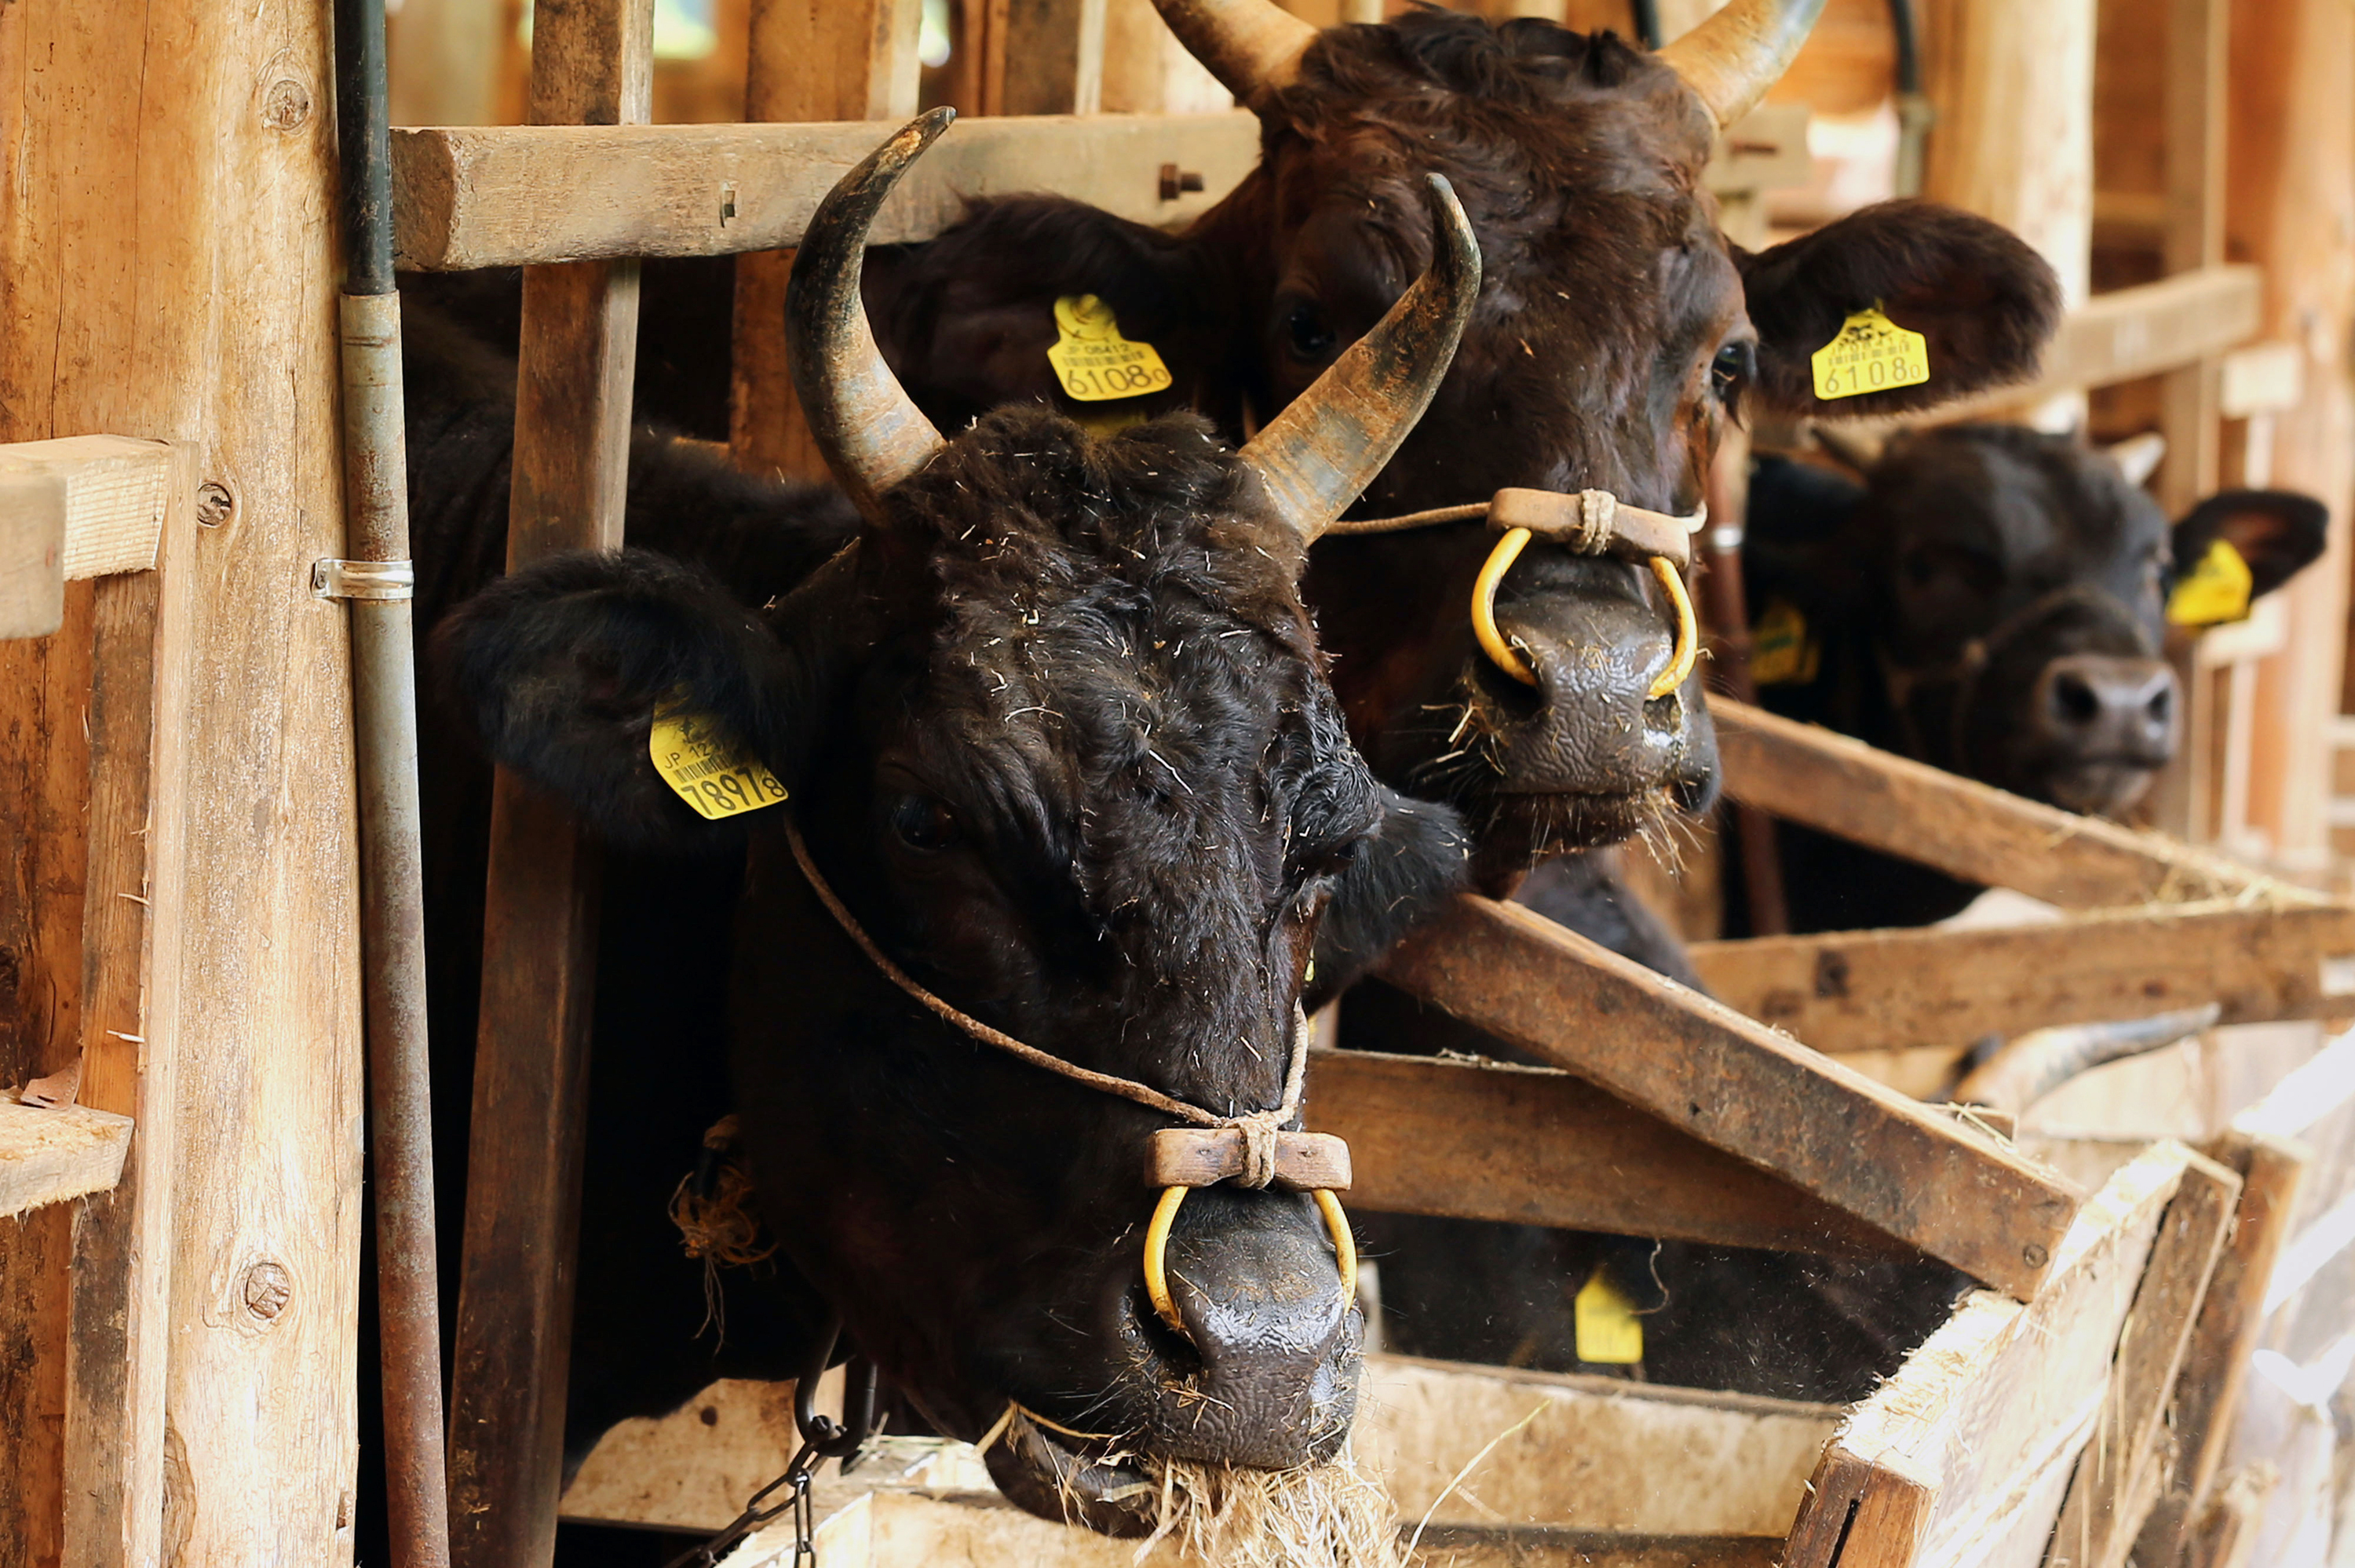 Tajima Wagyu beef cows at a cattle farm in Yabu City, Hyogo Prefecture, Japan. Japan won a provision in the new Pacific Rim trade deal that would push tariffs back up if its beef imports surge.